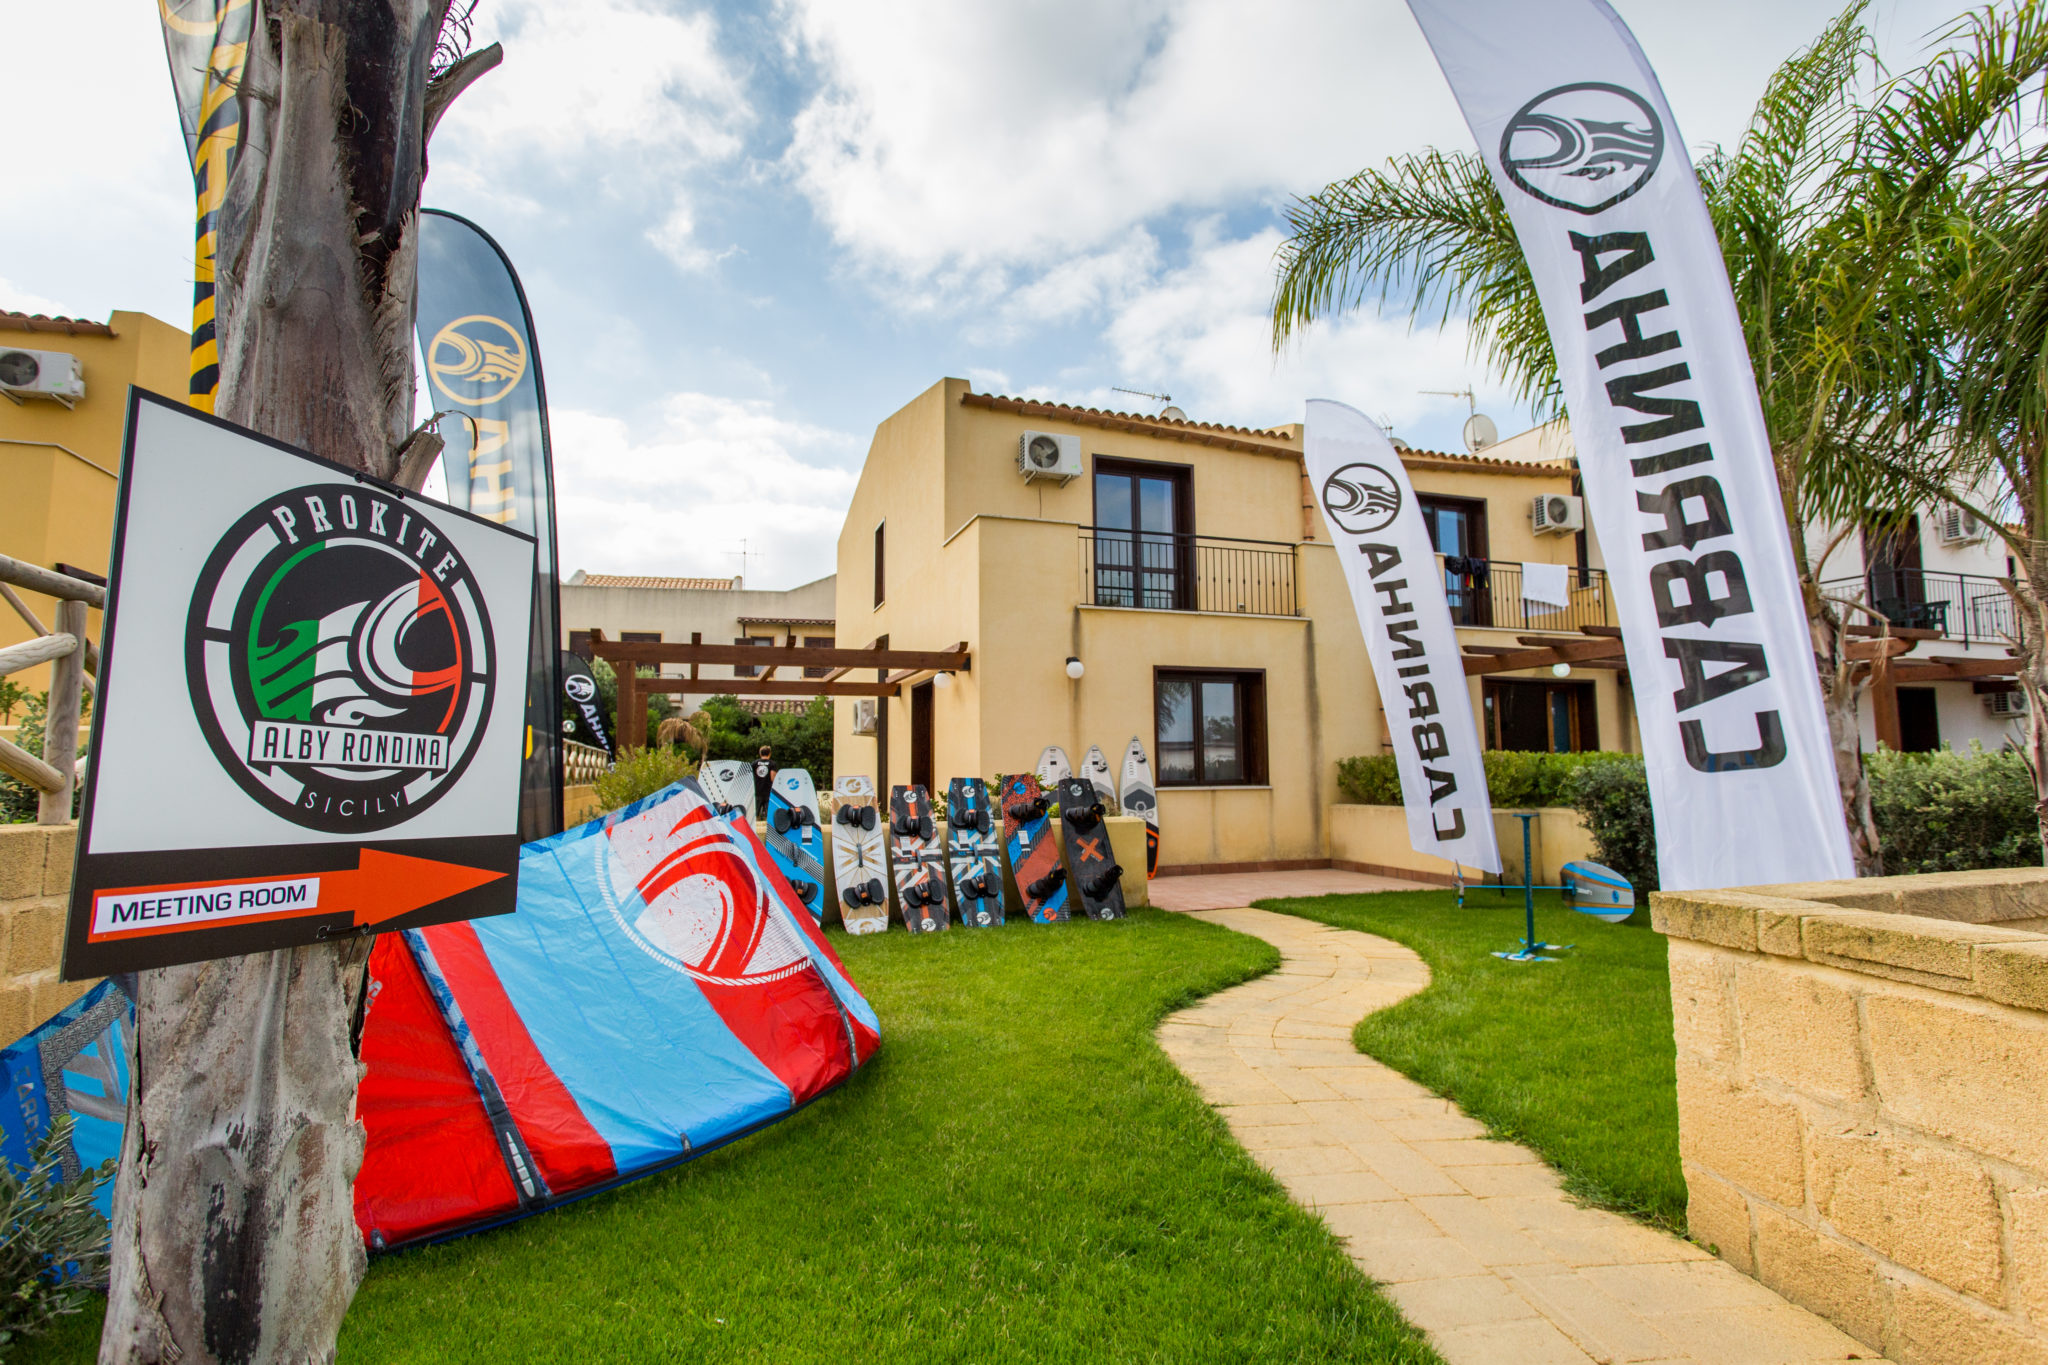 Kitesurf School, Rentals & Accomodation in Sicily | ProKite Alby Rondina